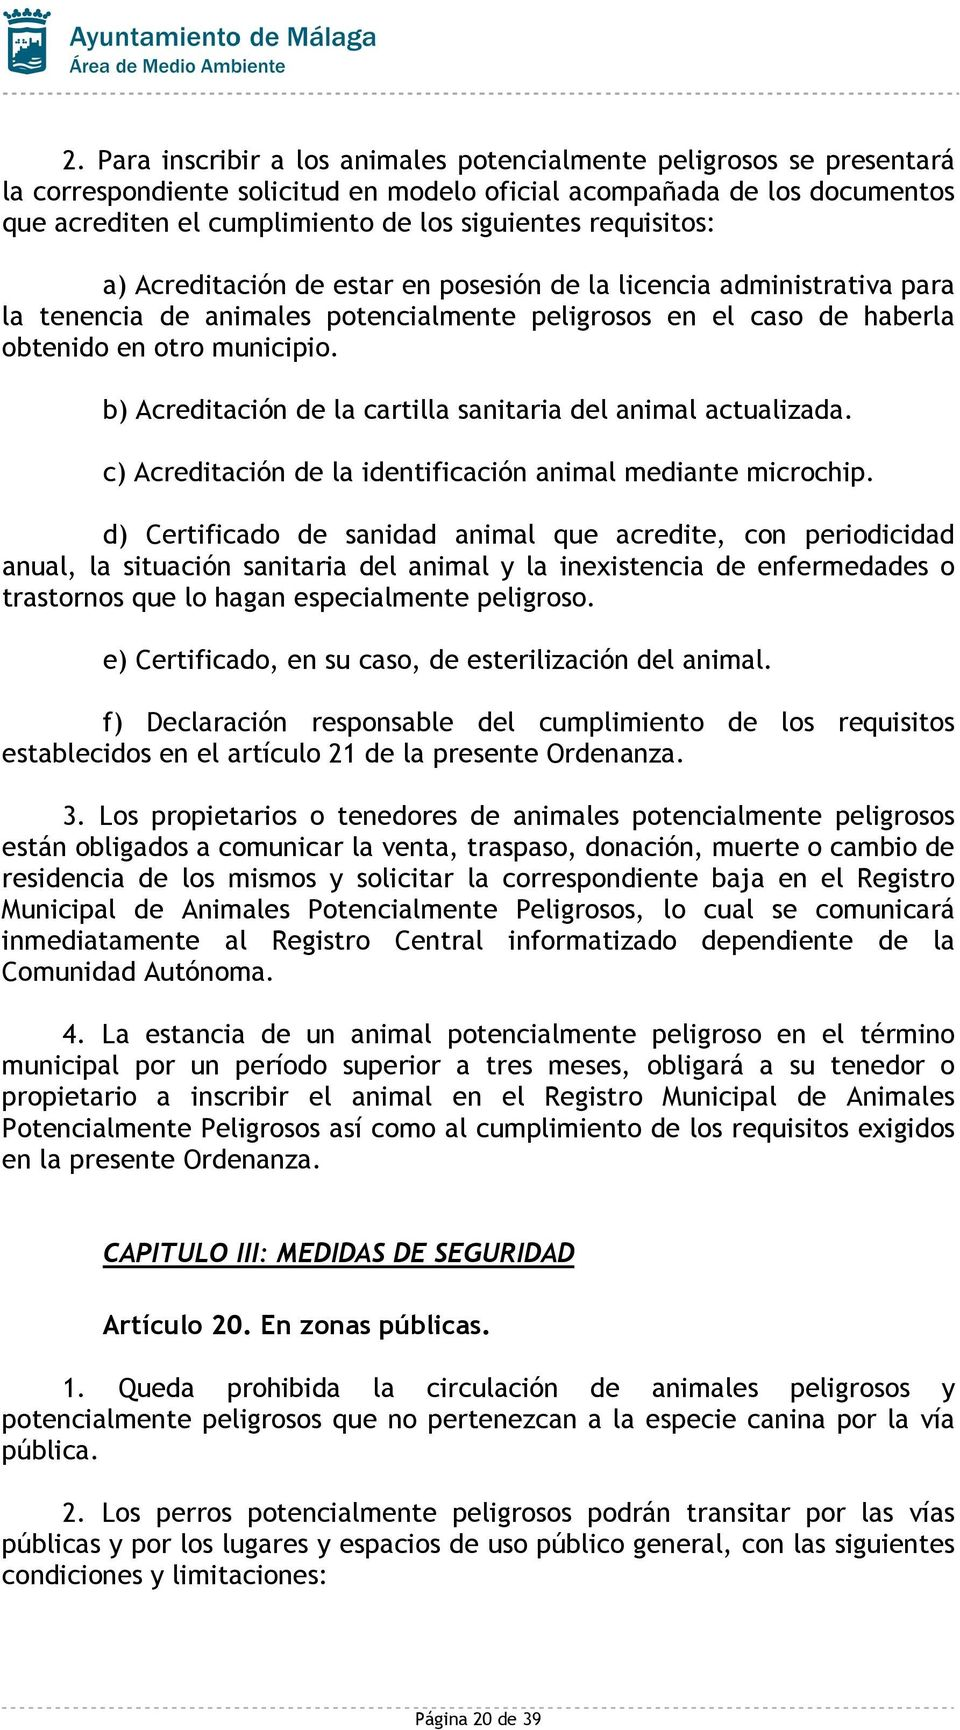 b) Acreditación de la cartilla sanitaria del animal actualizada. c) Acreditación de la identificación animal mediante microchip.